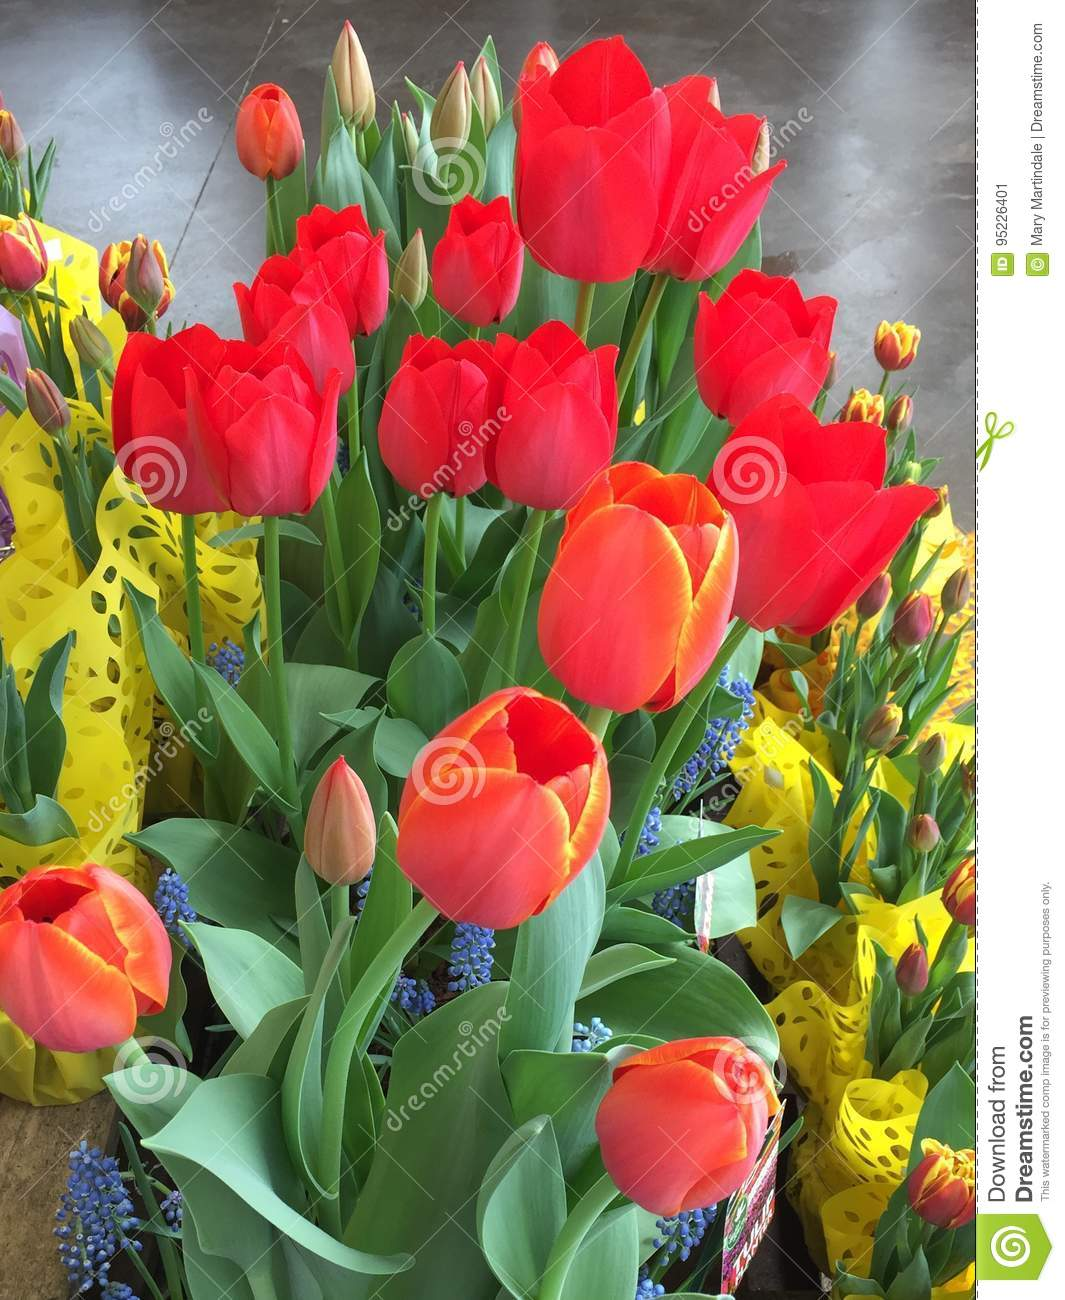 Red Tulips Stock Image Image Of Cellophane Flowers 95226401